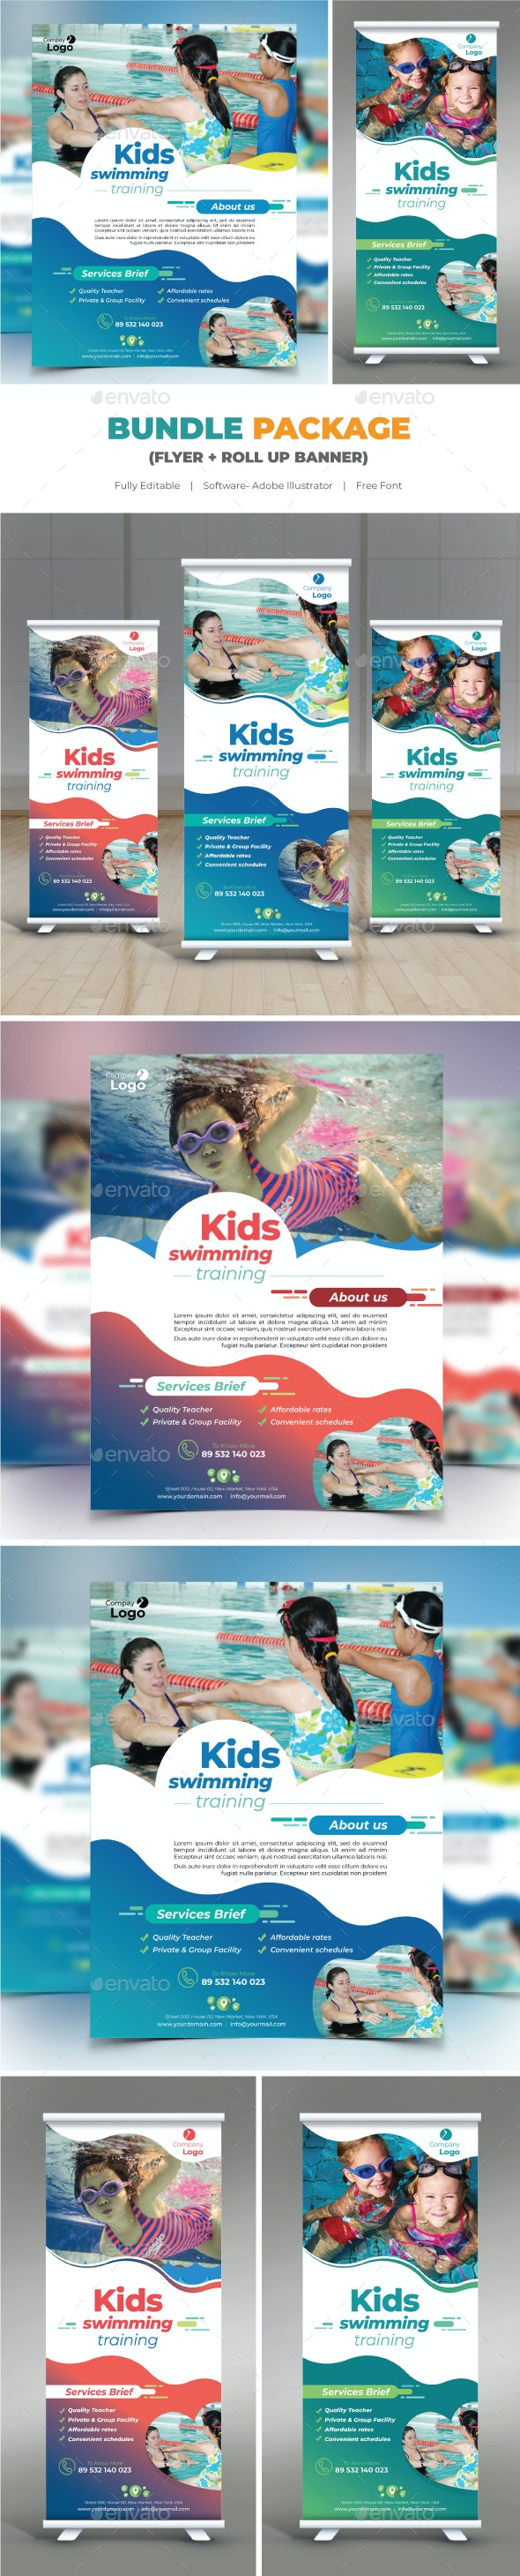 Kids Swimming Training Bundle (Flyer+Roll Up) - Flyers Print Templates